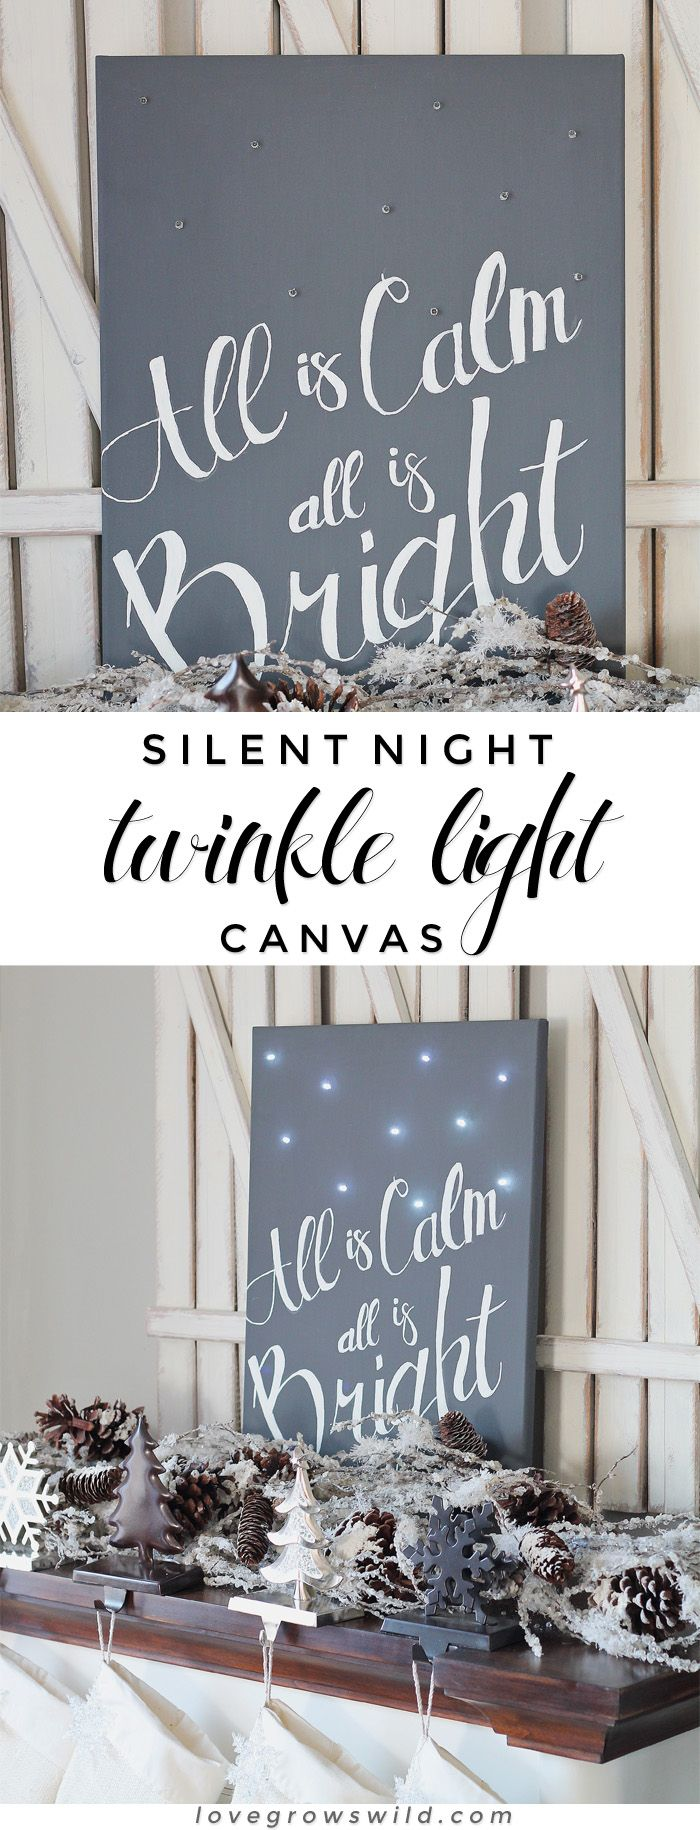 Silent Night Twinkle Light Canvas - Learn how to make this festive canvas art to light up your holiday! Details at LoveGrowsWild.com #chalkyfinish @michaelsstores